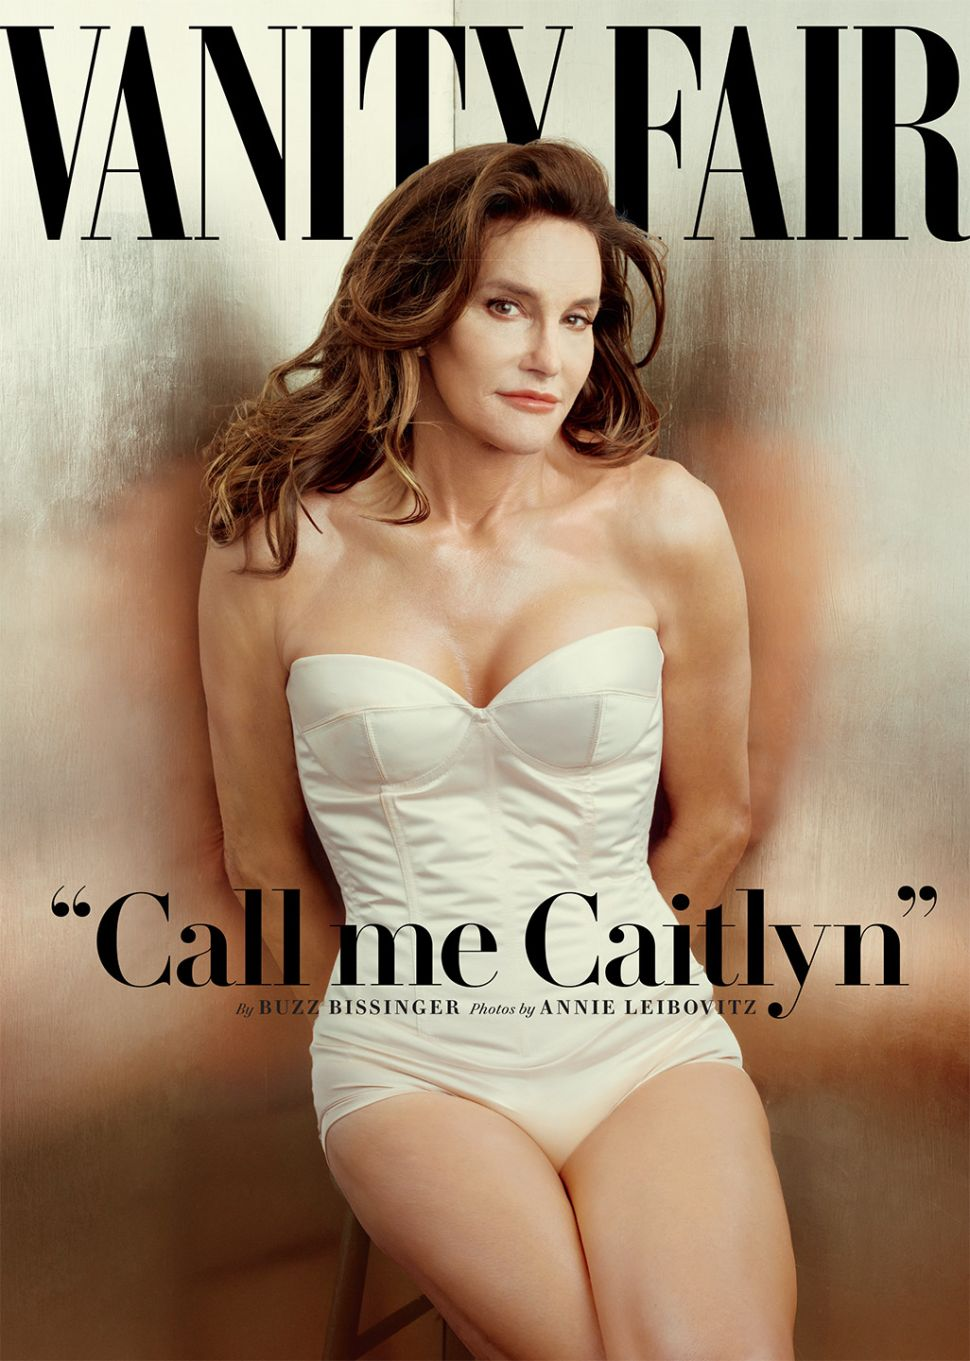 Here Comes Caitlyn: Bruce Jenner's New Look Unveiled on the Cover of Vanity Fair